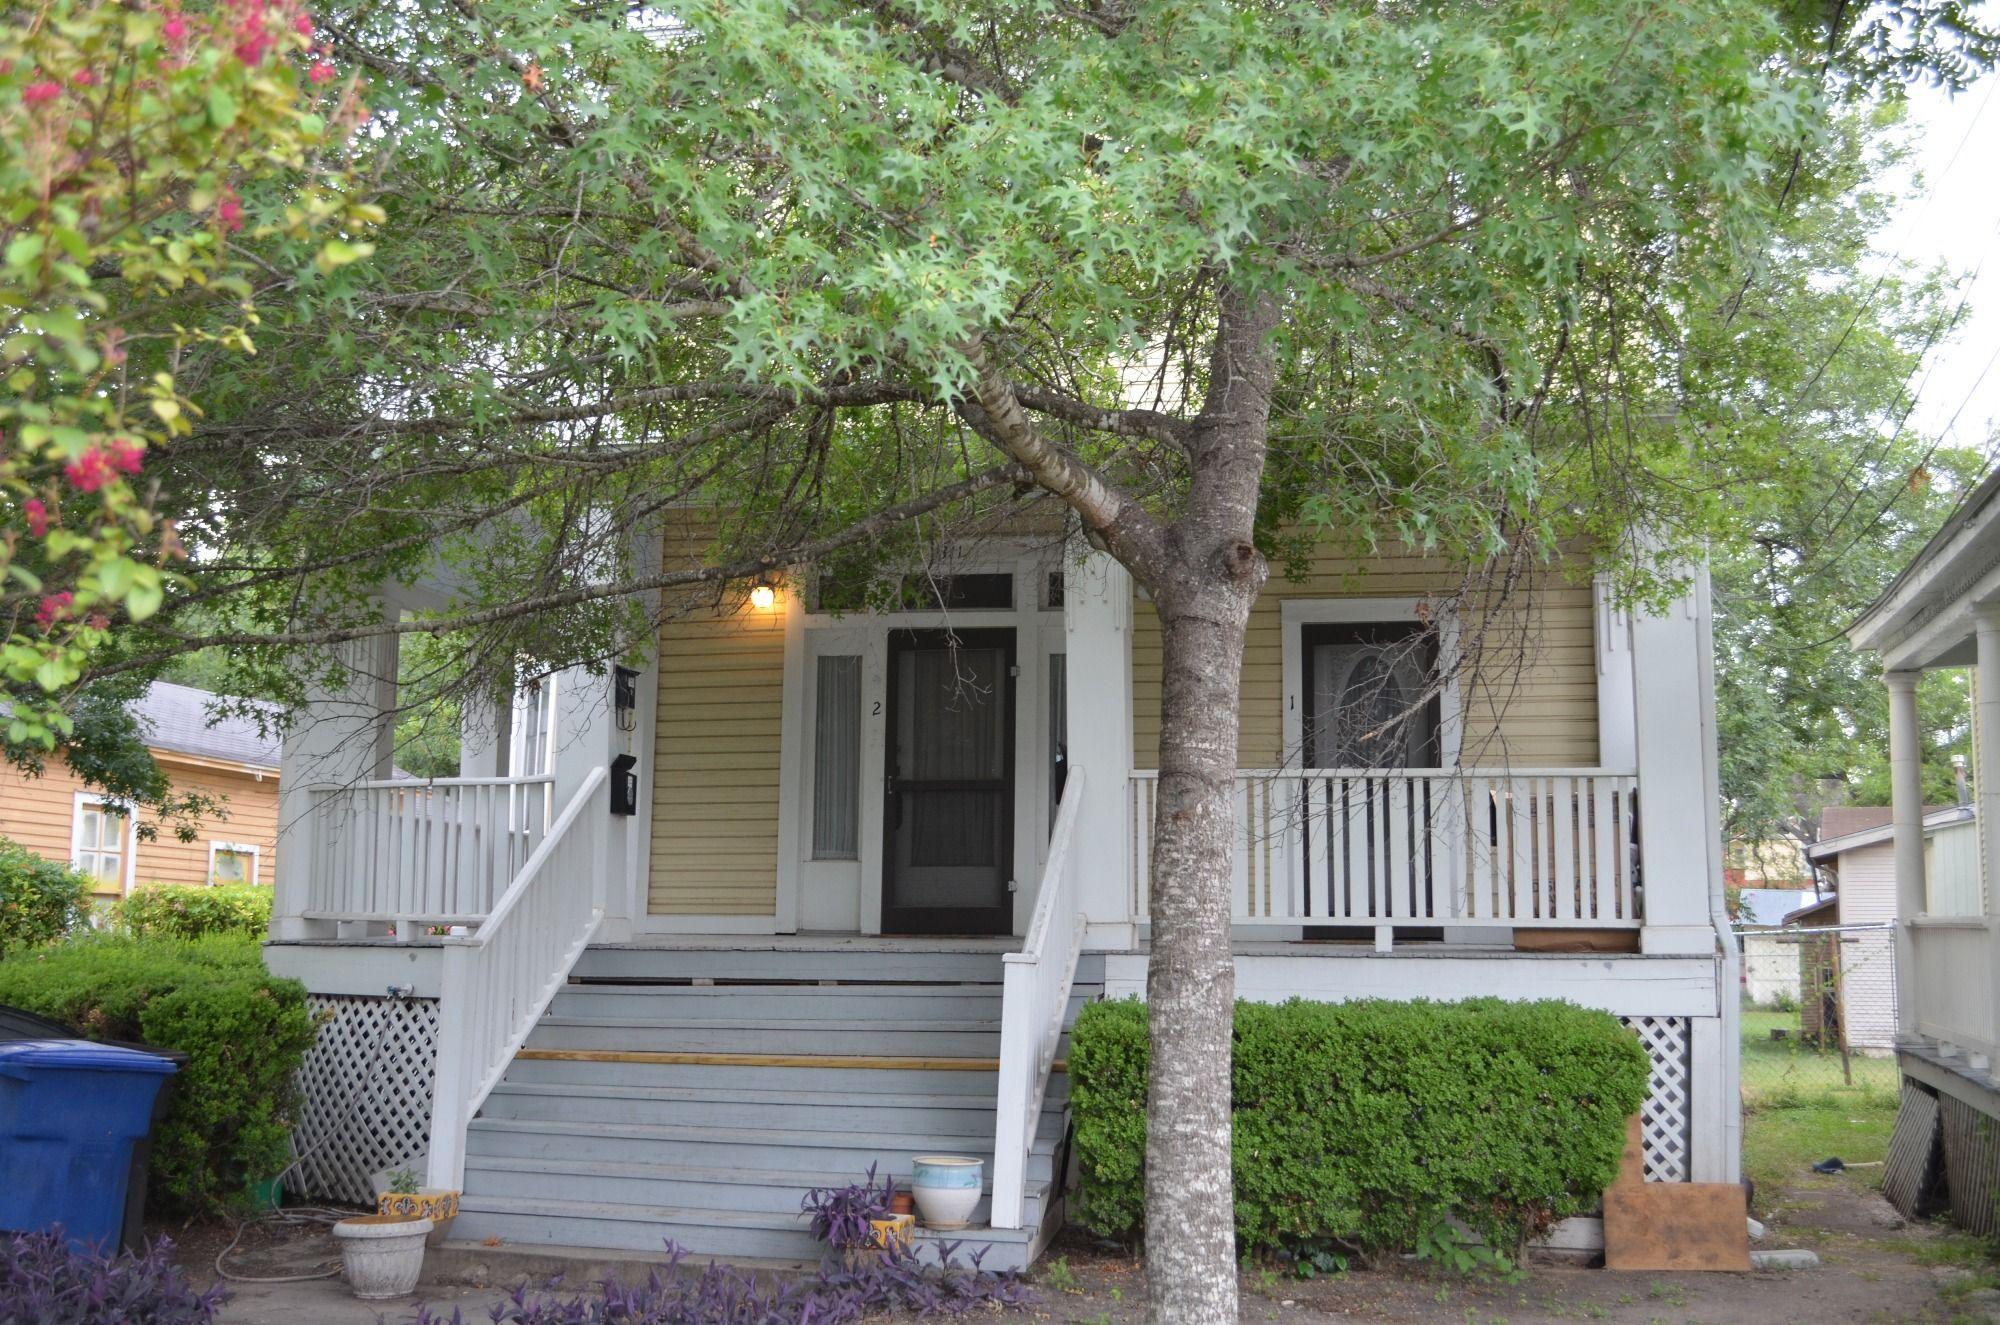 Apartment for rent in King William Historic District